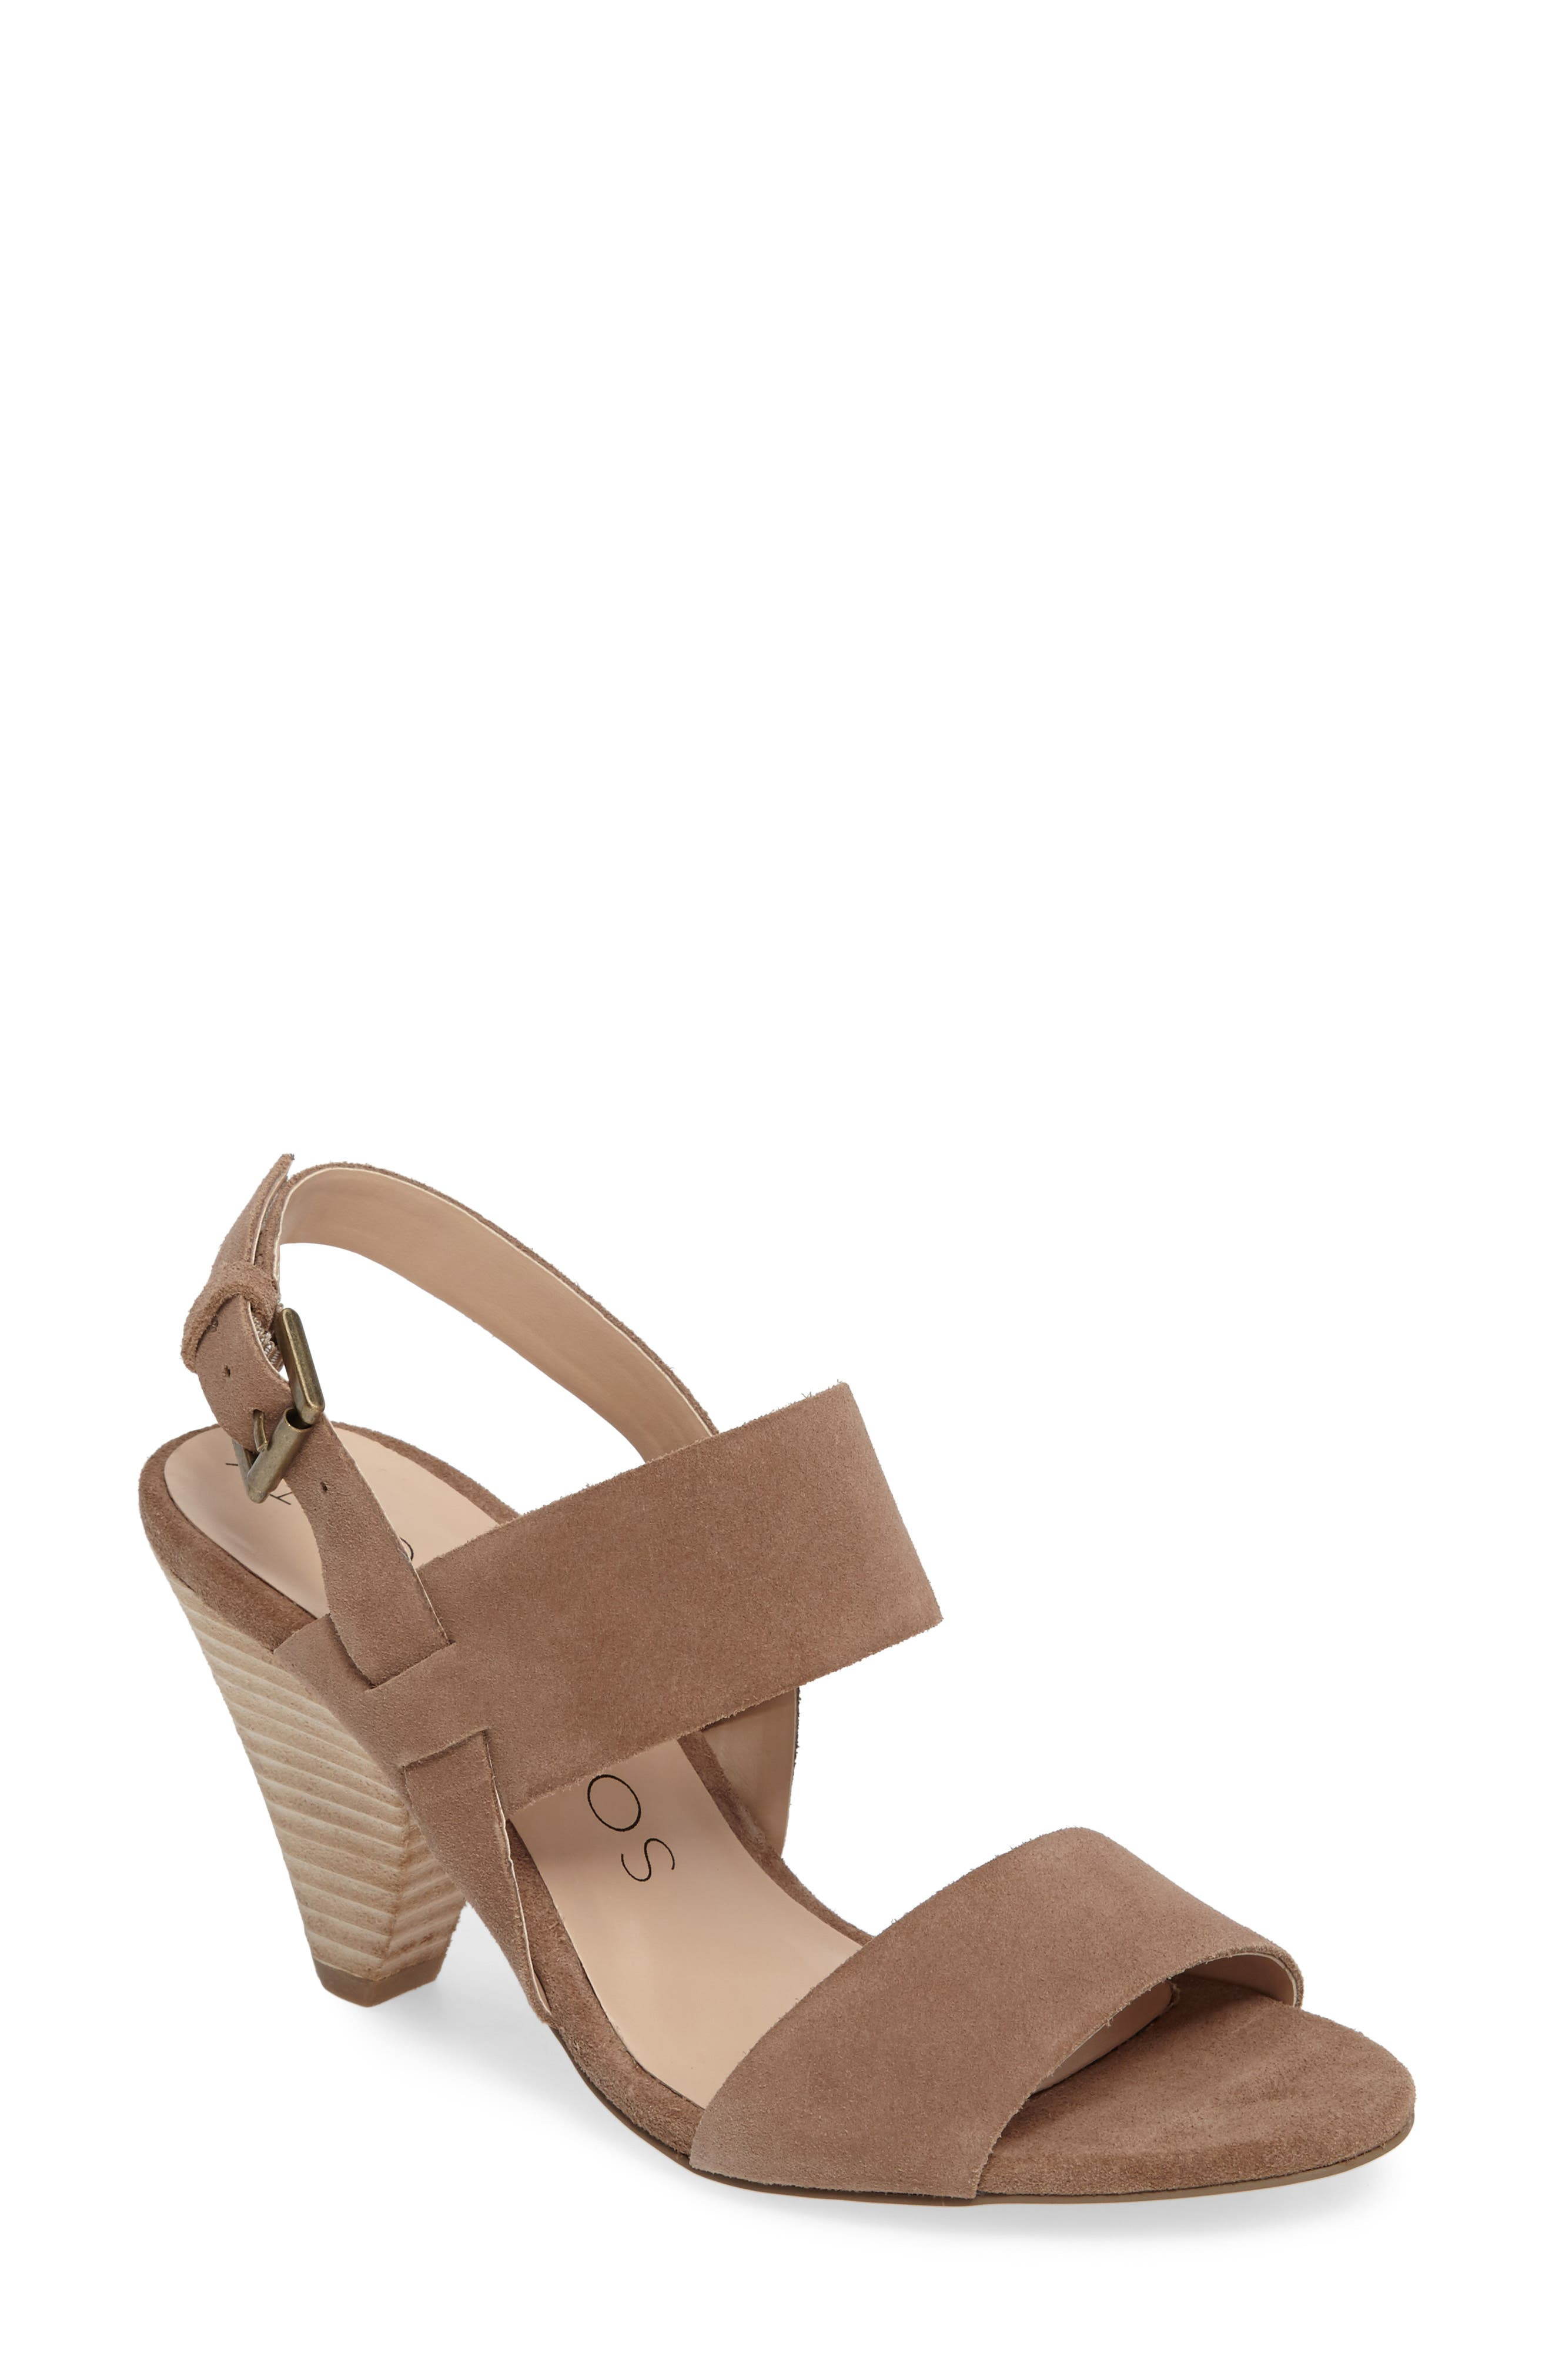 Valor Cone Heel Sandal,                         Main,                         color, 200